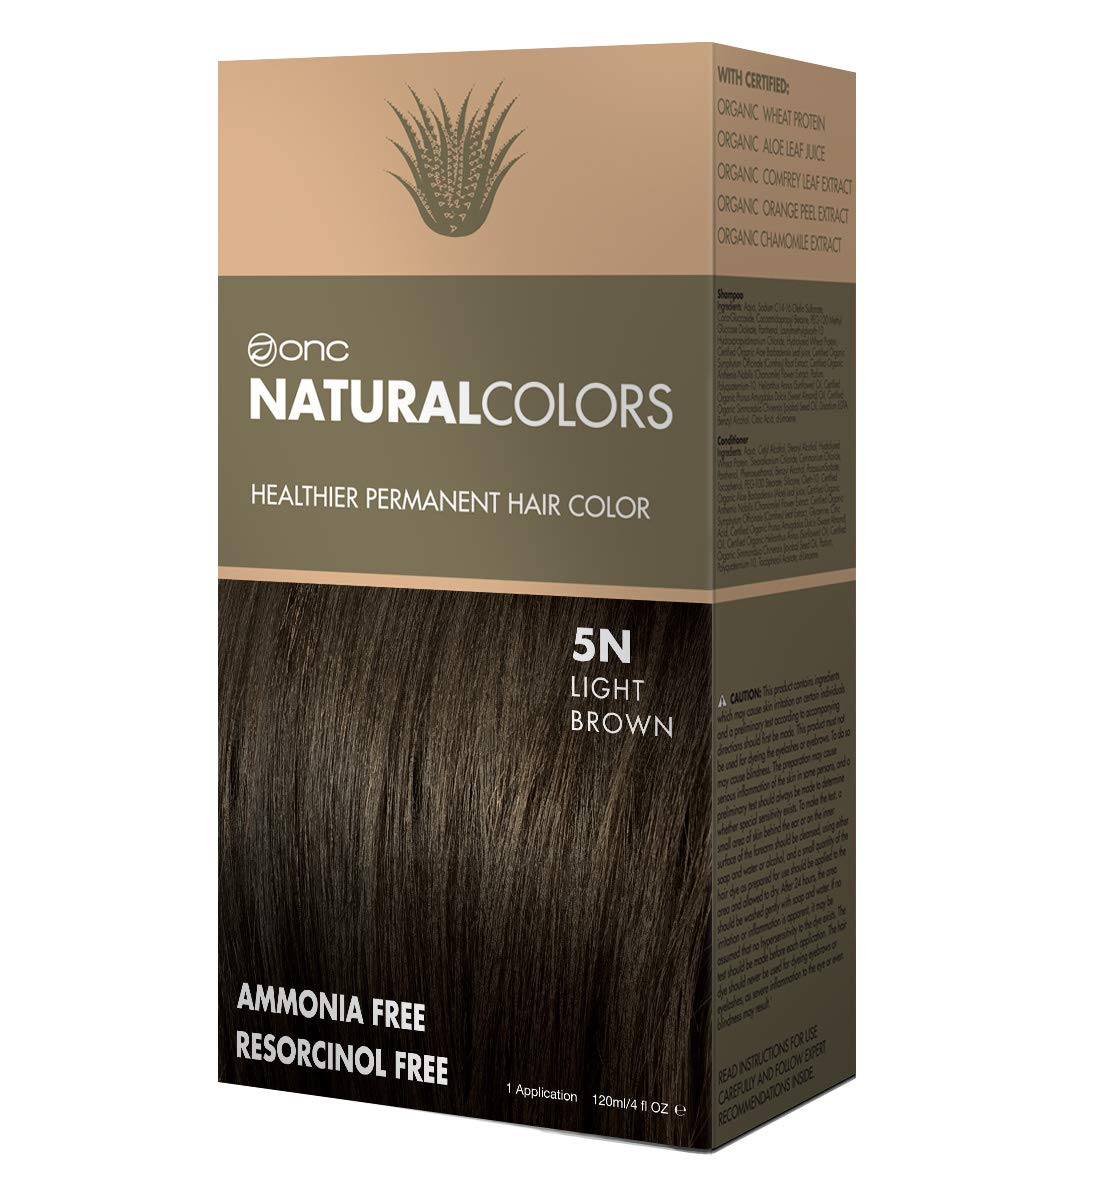 ONC NATURALCOLORS 5N Natural Light Brown Healthier Permanent Hair Color Dye 4 fl. oz. (120 mL) with Certified Organic Ingredients, Ammonia-free, Resorcinol-free, Paraben-free, Low pH, Salon Quality, E by ONC NATURALCOLORS